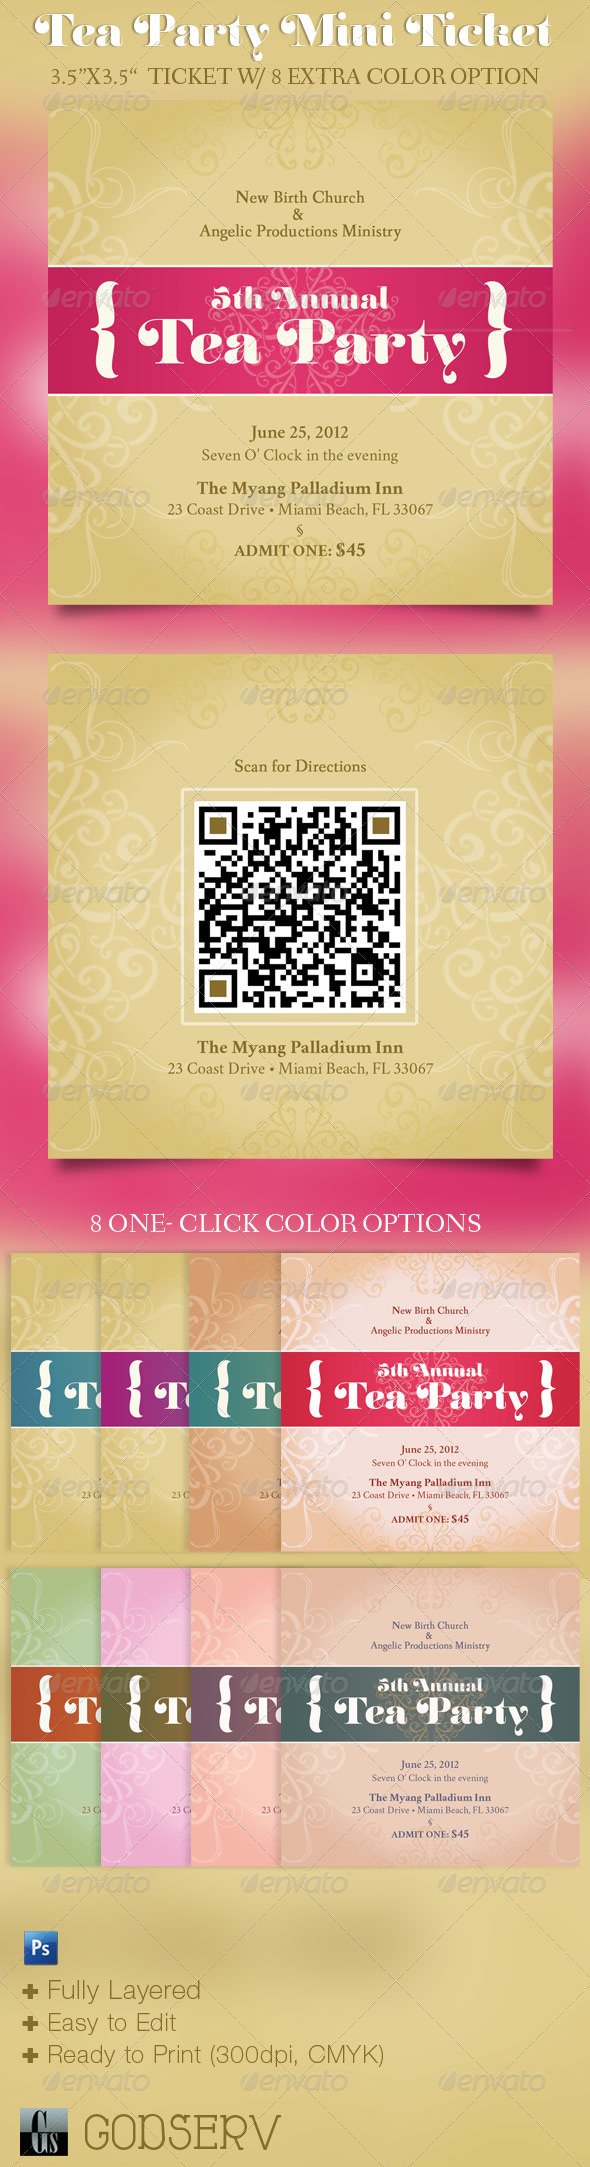 GraphicRiver Tea Party Mini Ticket Template 2532570